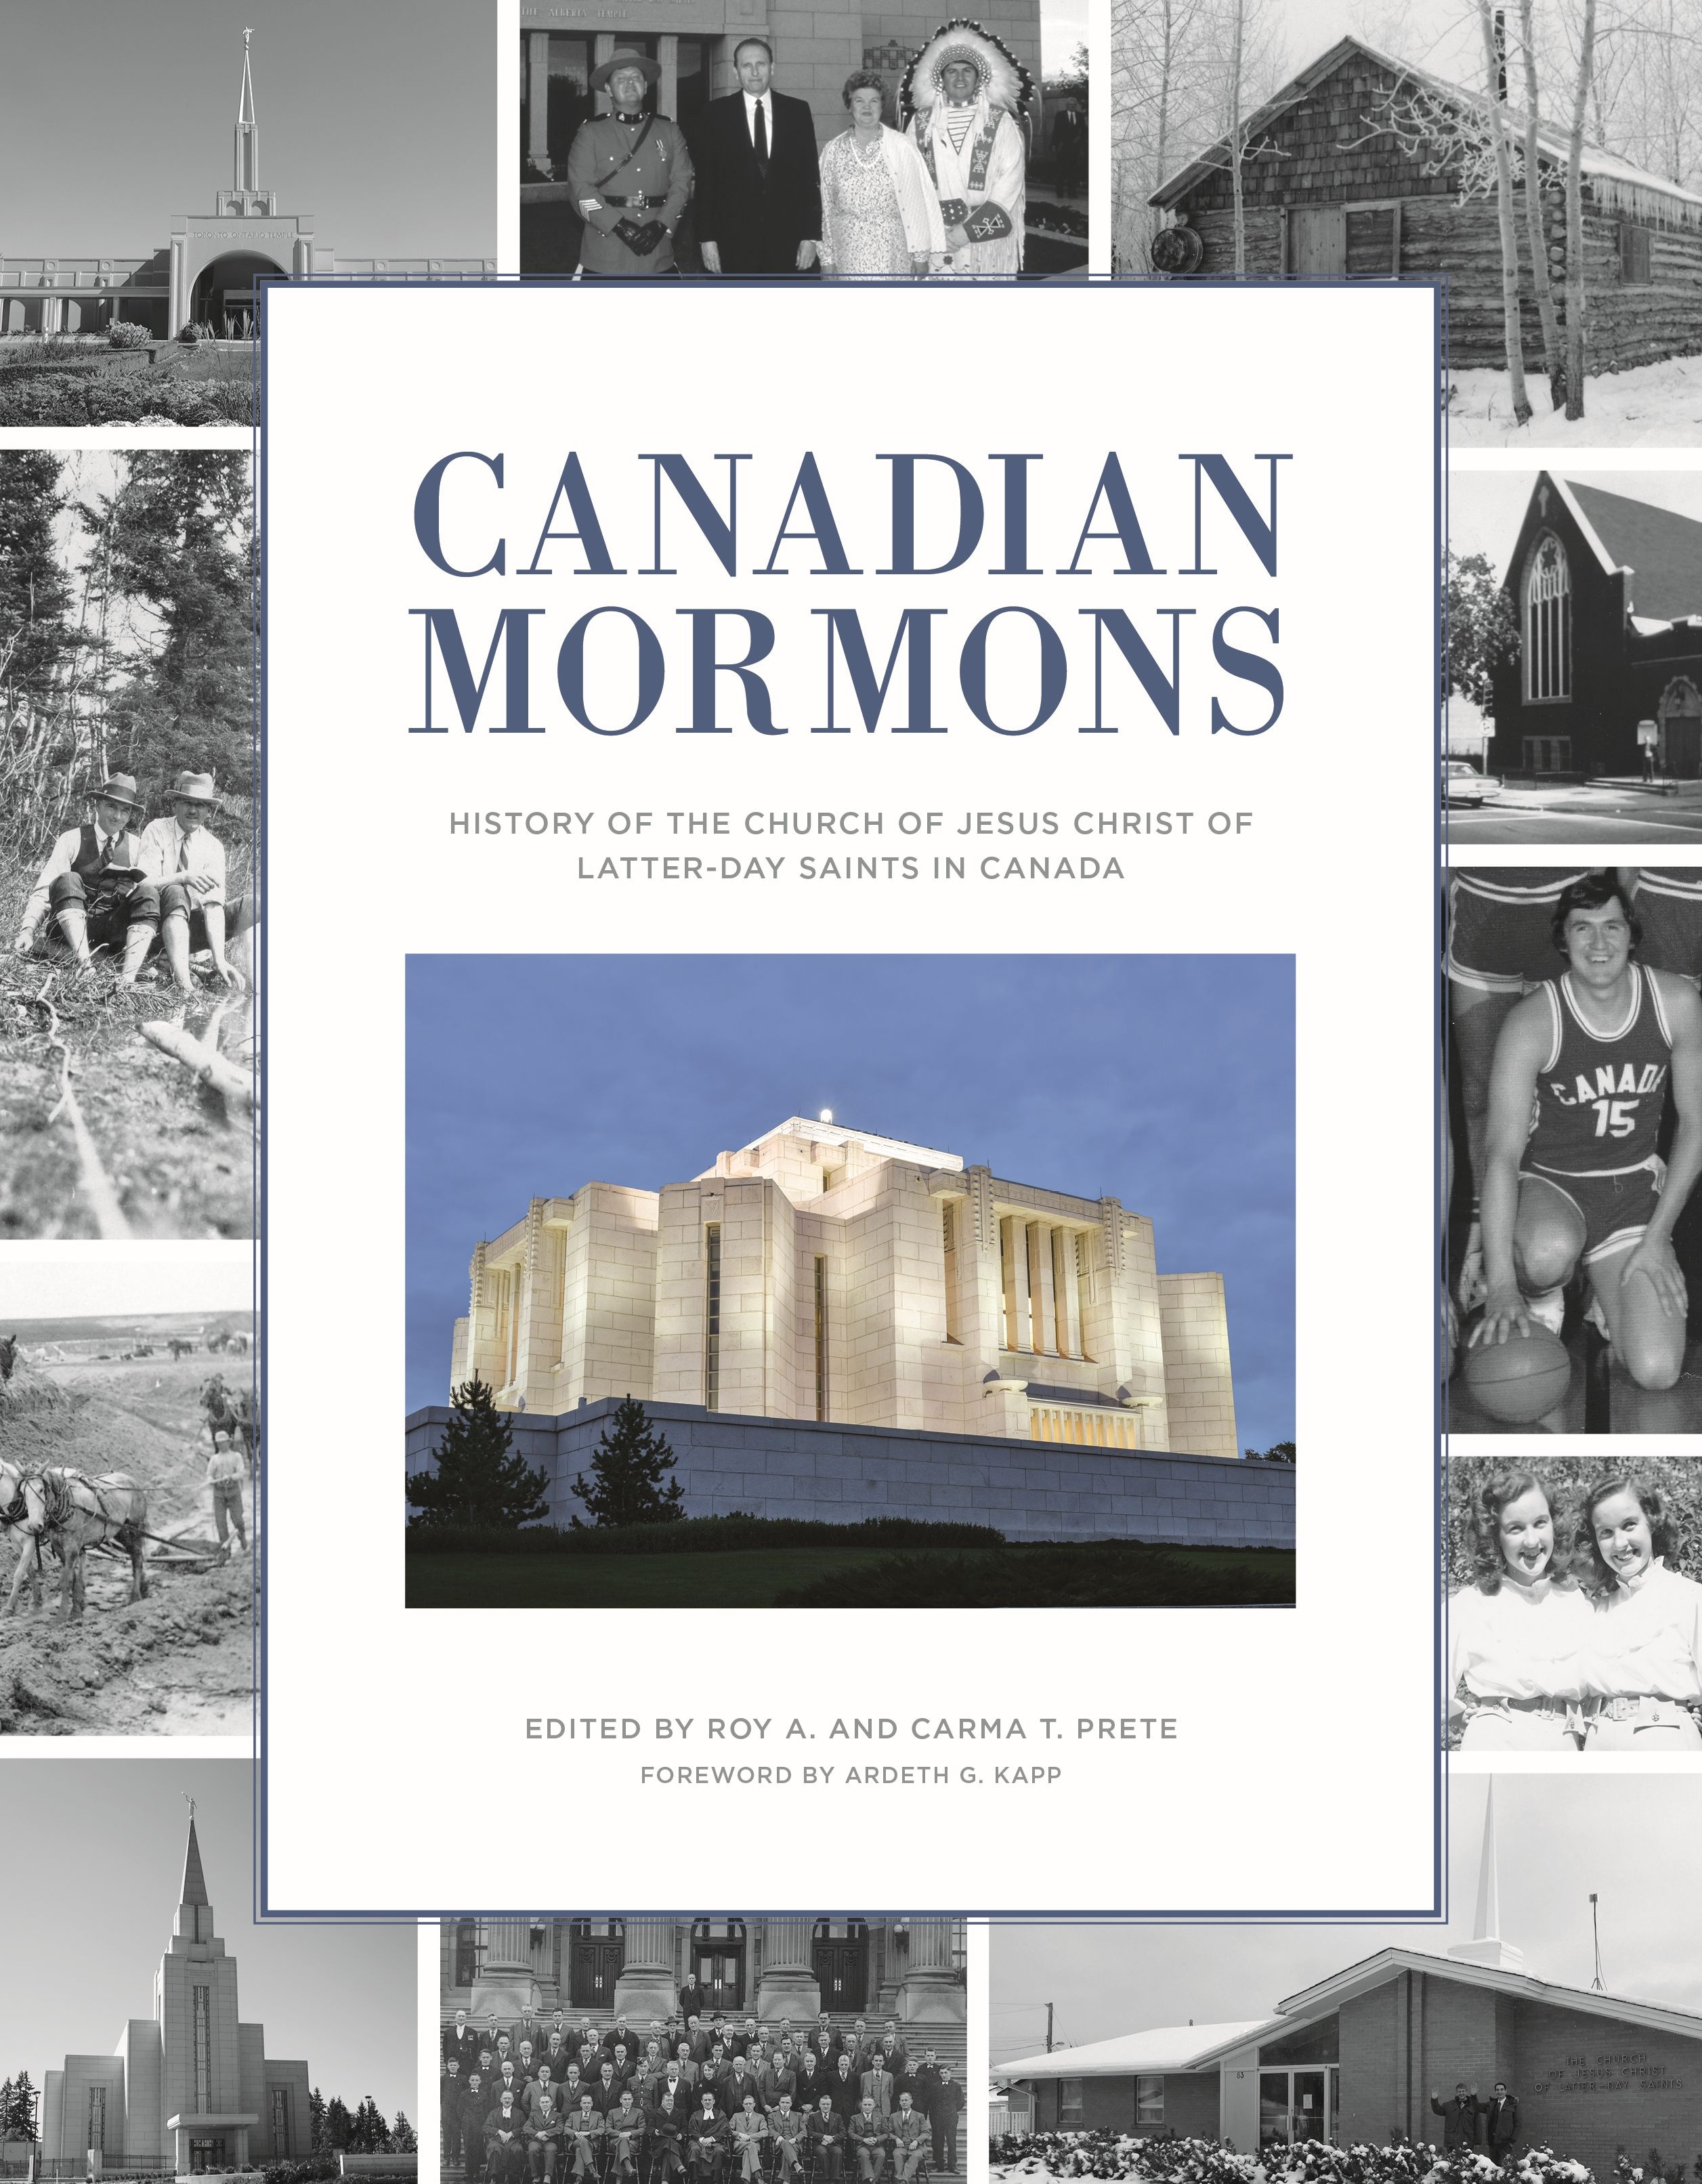 Canadian Mormons: A History of The Church of Jesus Christ of Latter-day Saints in Canada, Prete, Roy A. and Carma Prete (Editors)